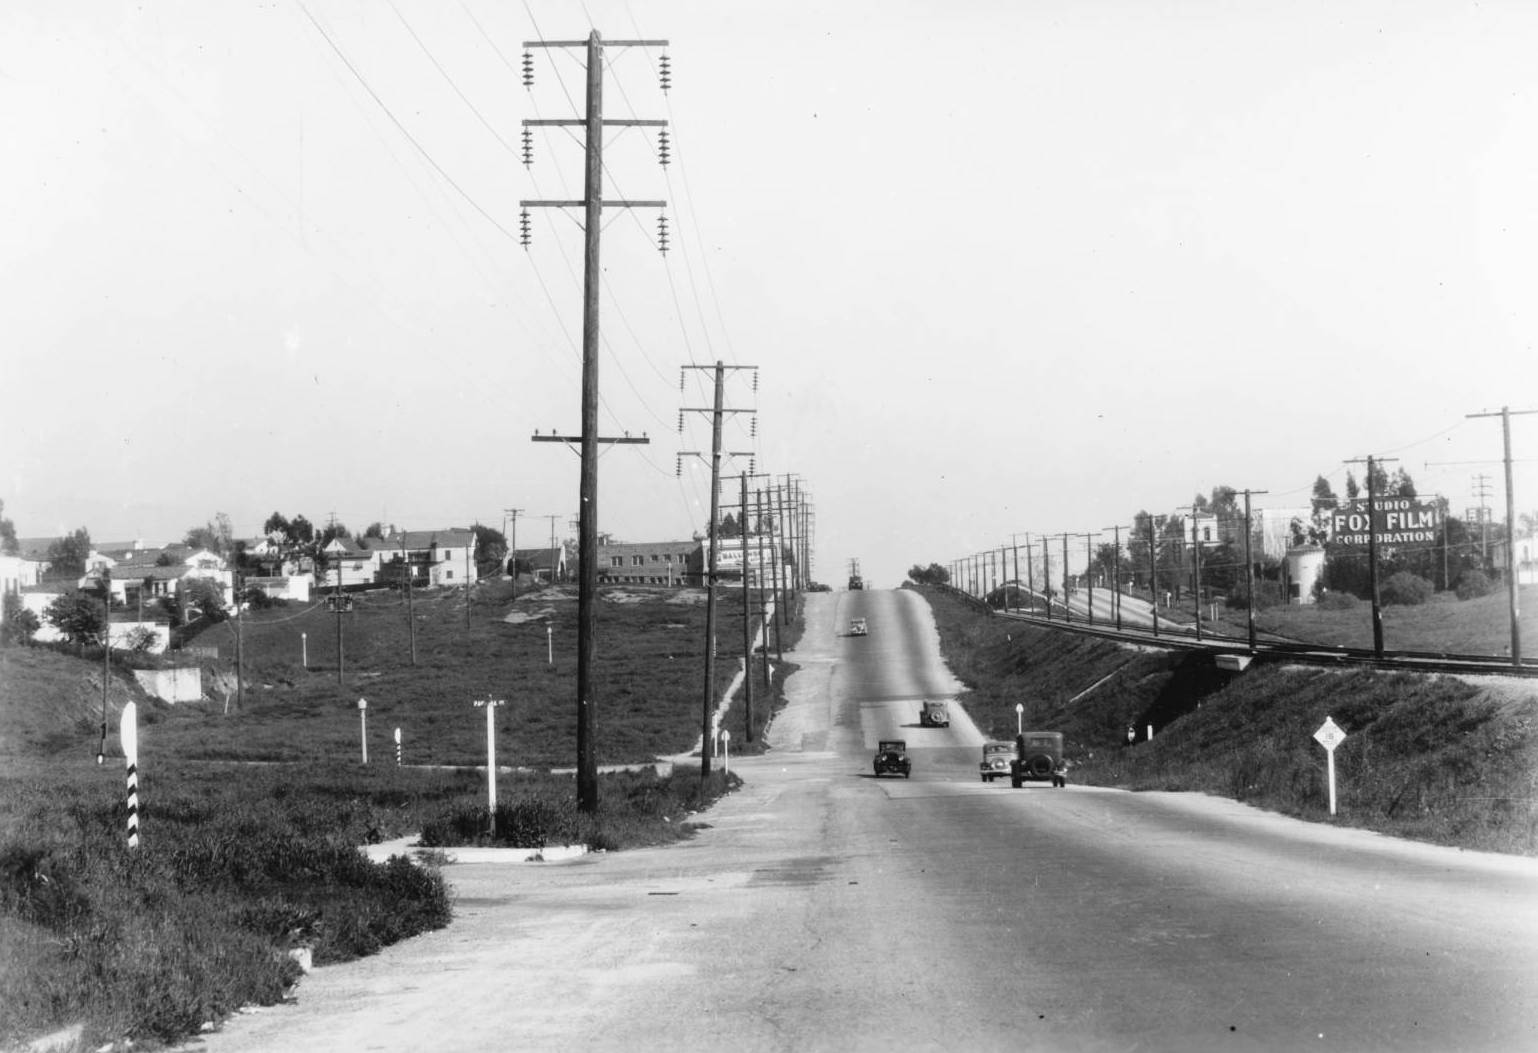 Santa Monica Boulevard parallels Pacific Electric tracks in this 1935 photo, taken at Pandora Avenue looking east. Courtesy of the USC Libraries - California Historical Society Collection.